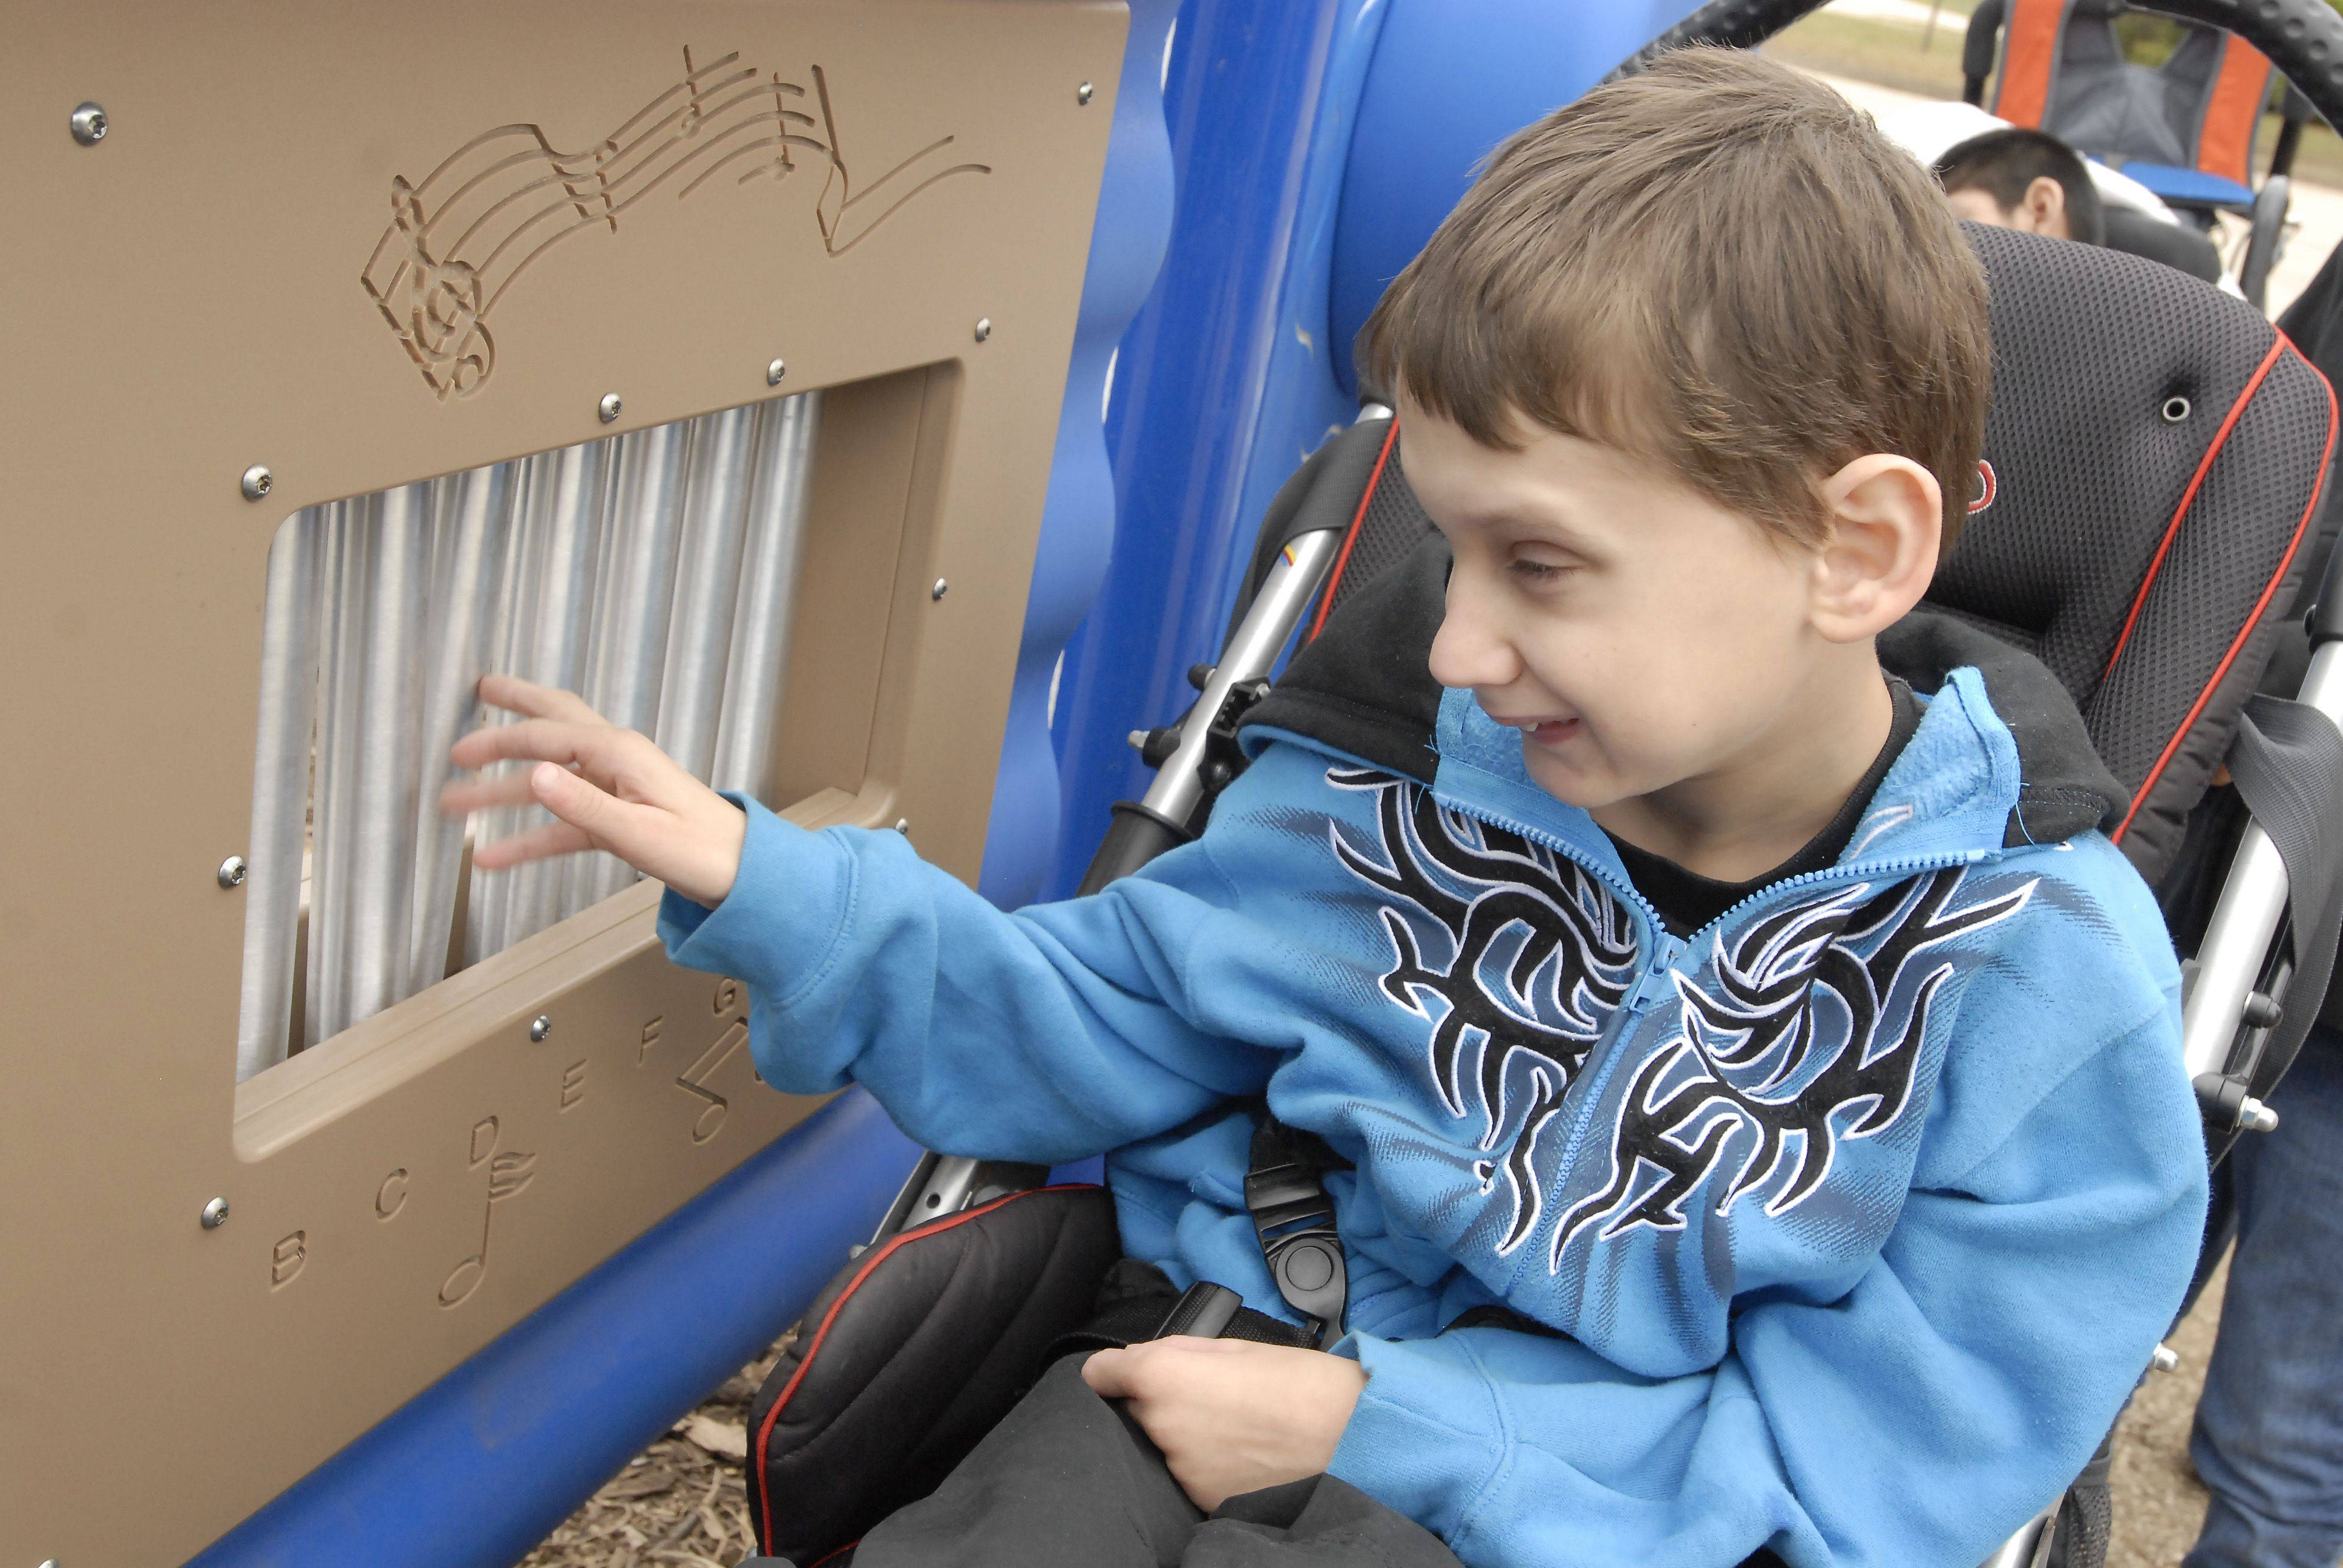 Hunter Smith plays the chimes on a panel for disabled children at the new playground at Nature Ridge Elementary School in Bartlett. They would like to raise more funds for additional panels.